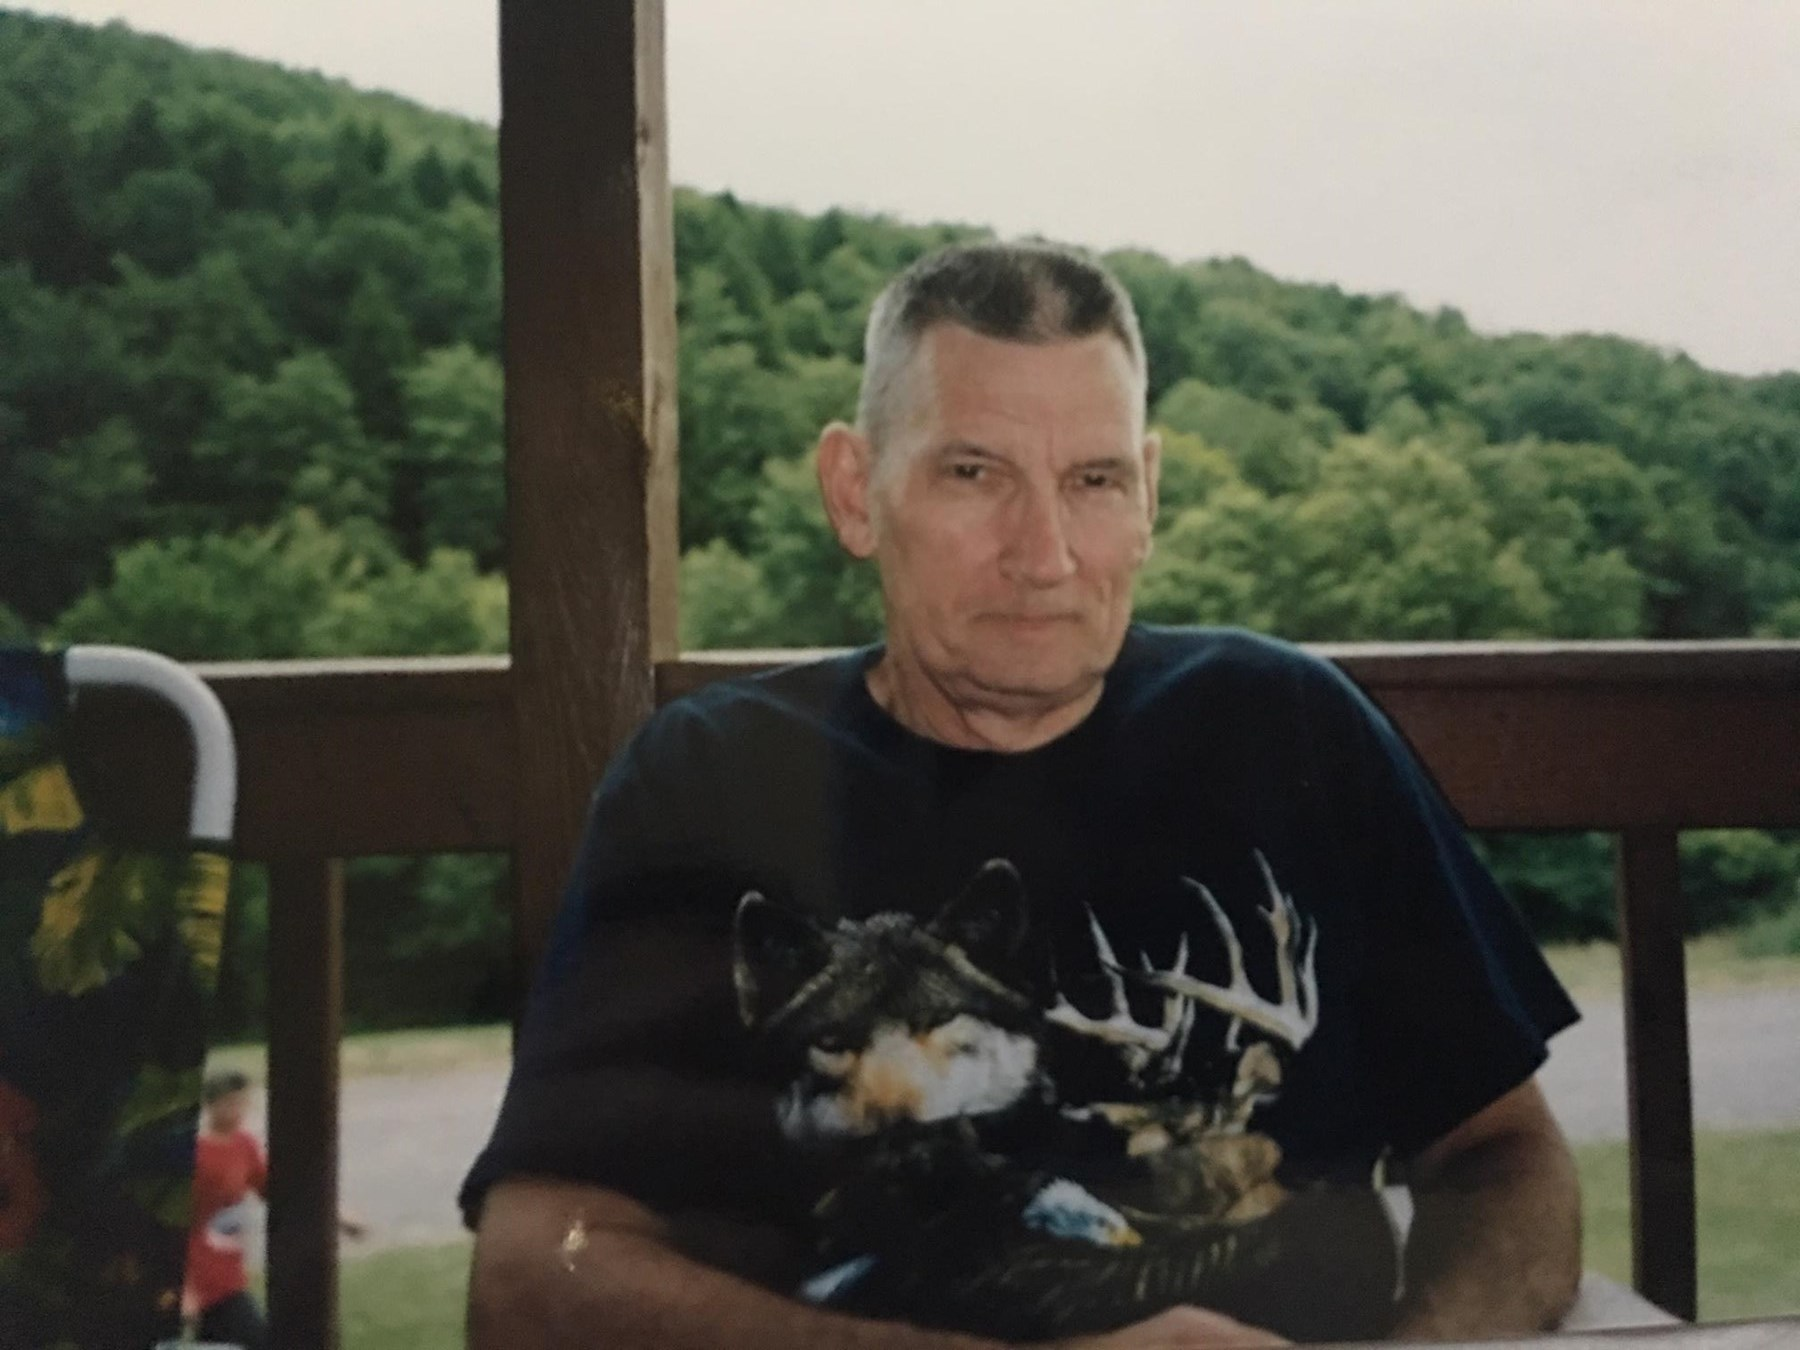 Swingers in port dickinson ny Lycoming County Obituaries, Lycoming County, Pennsylvania